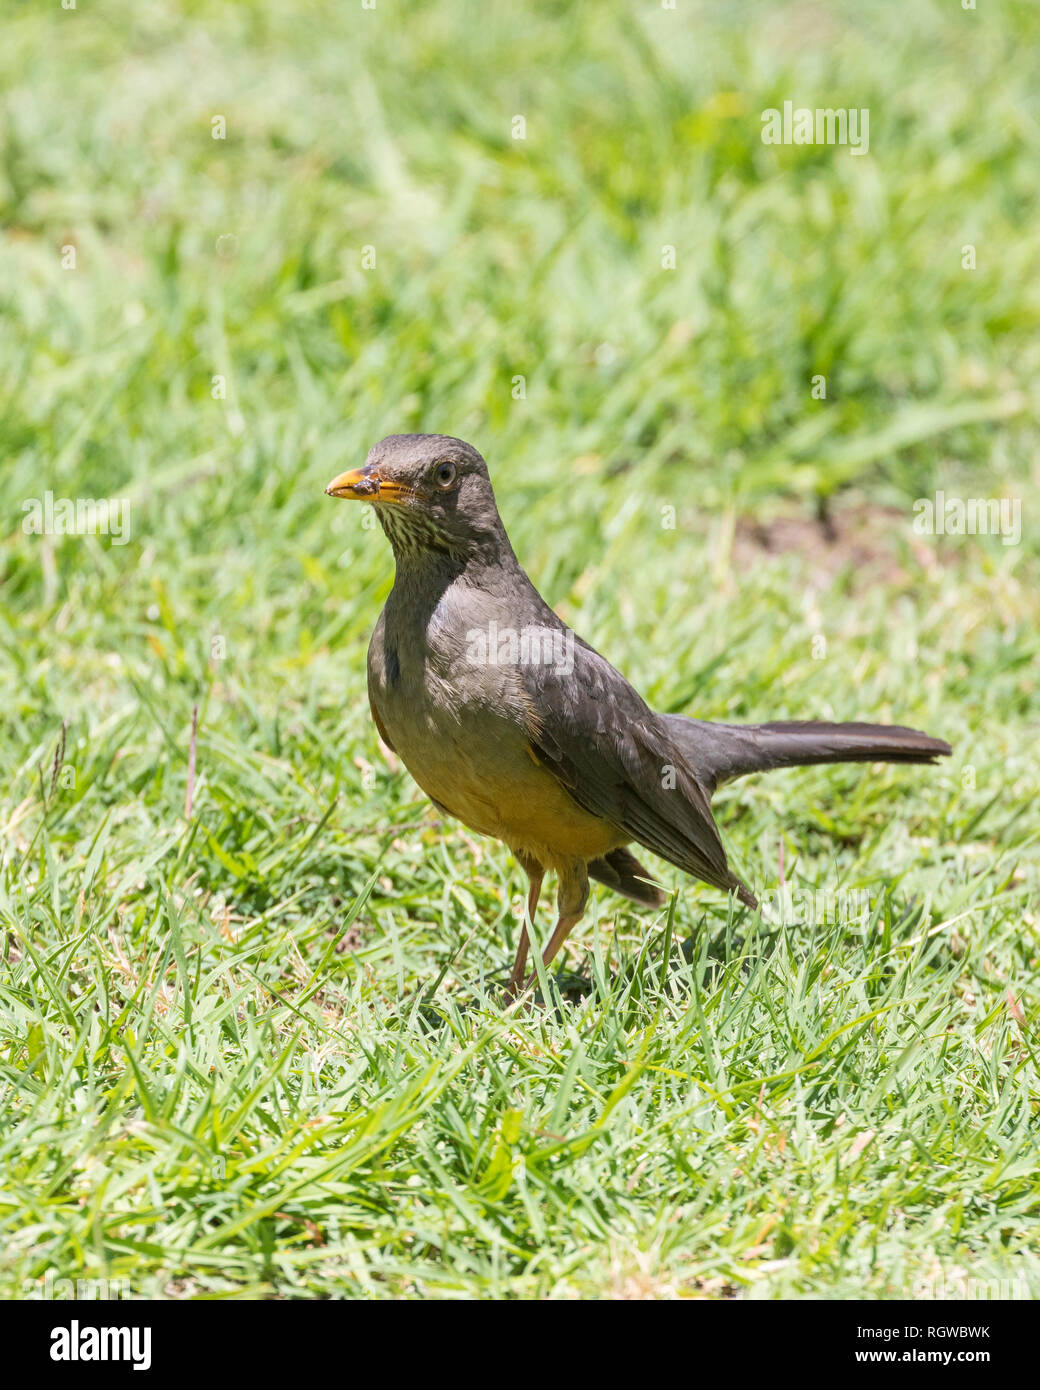 Olive Thrush(Turdus olivaceus) foraging on grass for earthworms. Remnant of worm in beak. Summer, Western Cape, South Africa, Stock Photo